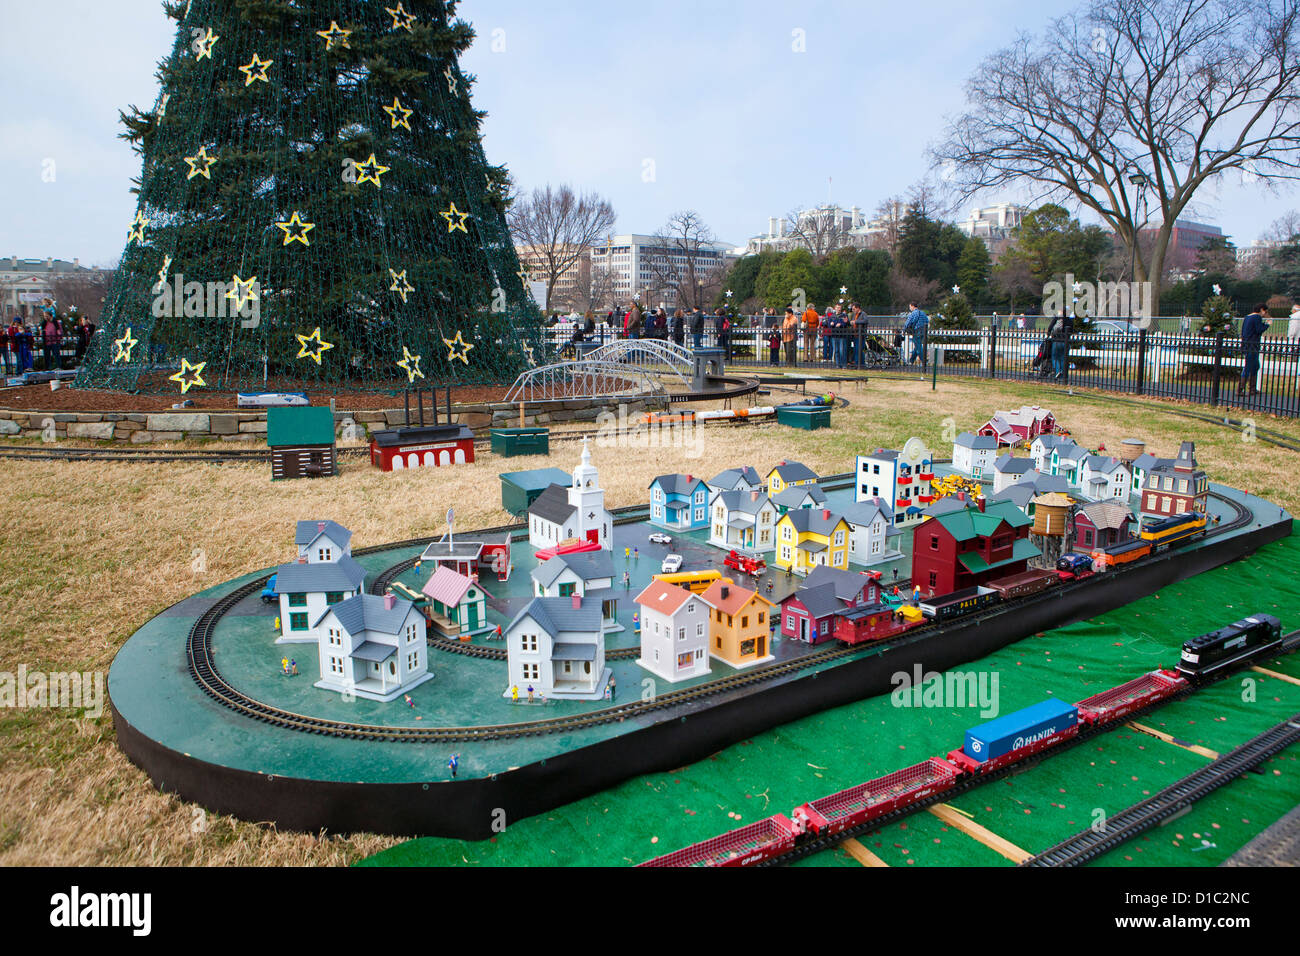 2012 National Christmas tree and model train exhibit - Washington, DC - Stock Image